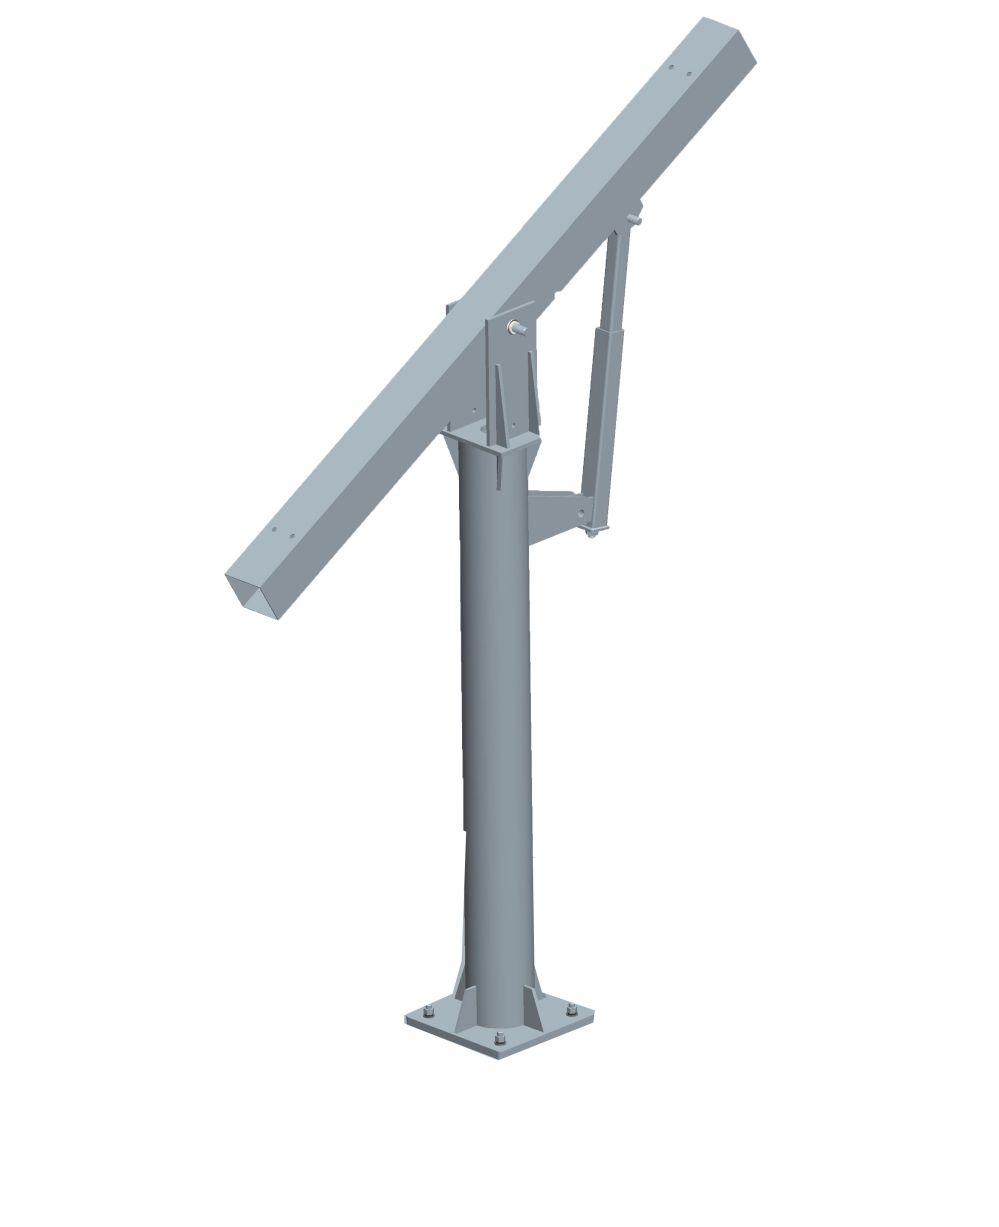 Adjustable tube with beam for solar pv ground mounting system